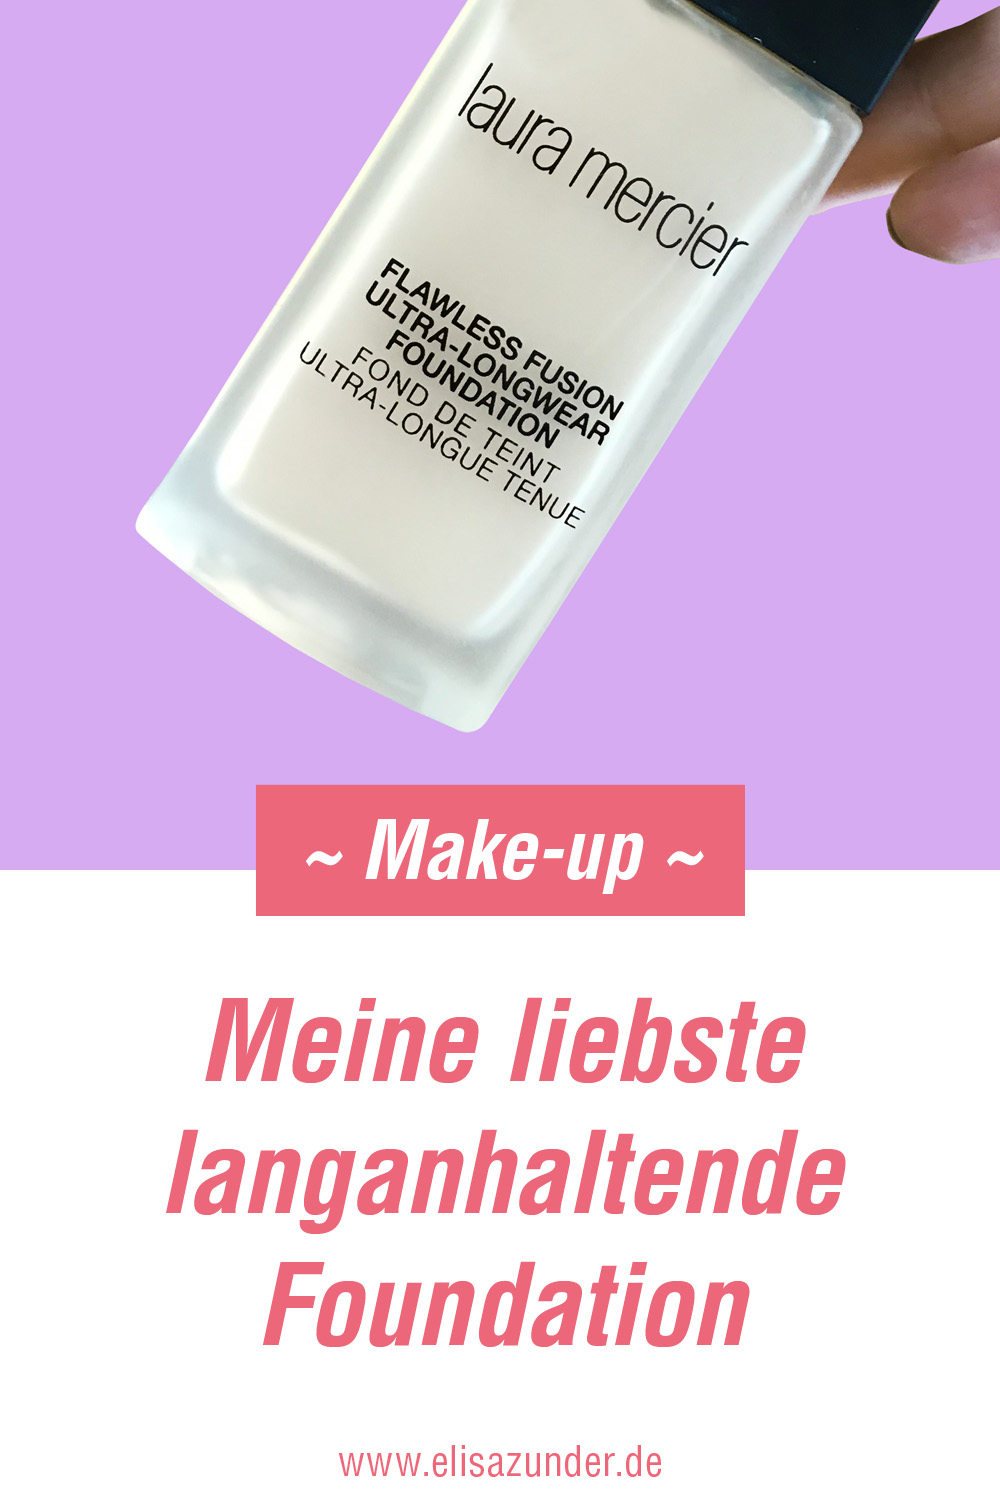 langanhaltende Foundation von Laura Mercier, Foundation, die hält, lananhaltende Foundation, Foundation von Laura Mercier, Make-up Picks, Make-up, Beauty Picks, tolle langanhaltende Foundation